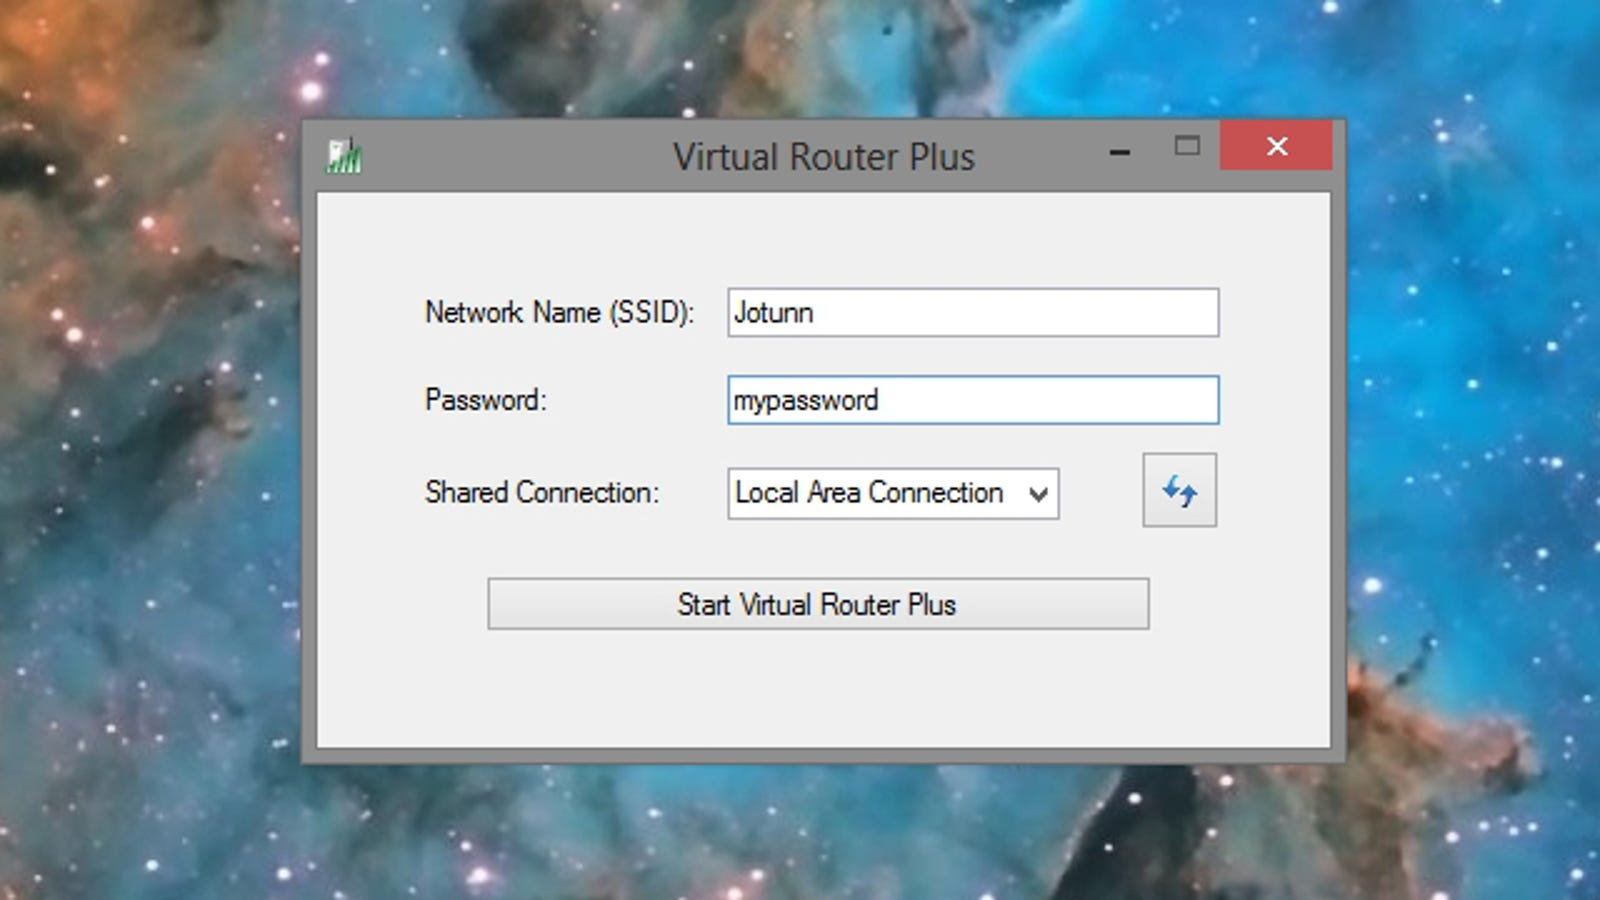 Virtual Router Plus Turns Your Windows 8 PC Into a Wi-Fi Hotspot